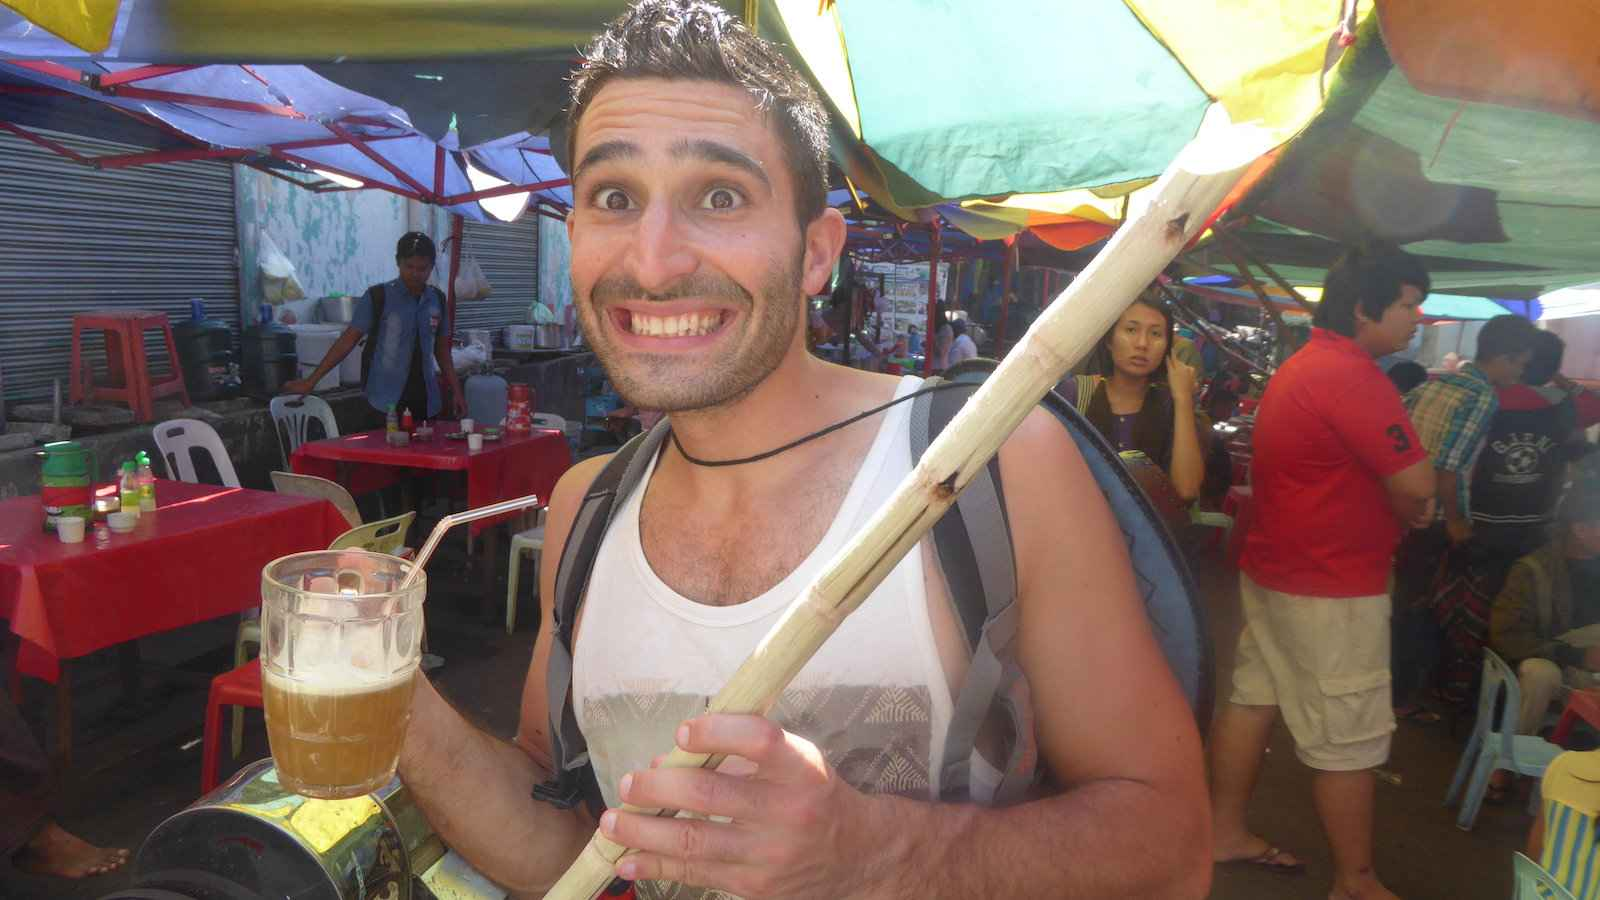 Sugar cane juice is a refreshing and naturally sweet beverage that you can find at street food stalls in Laos